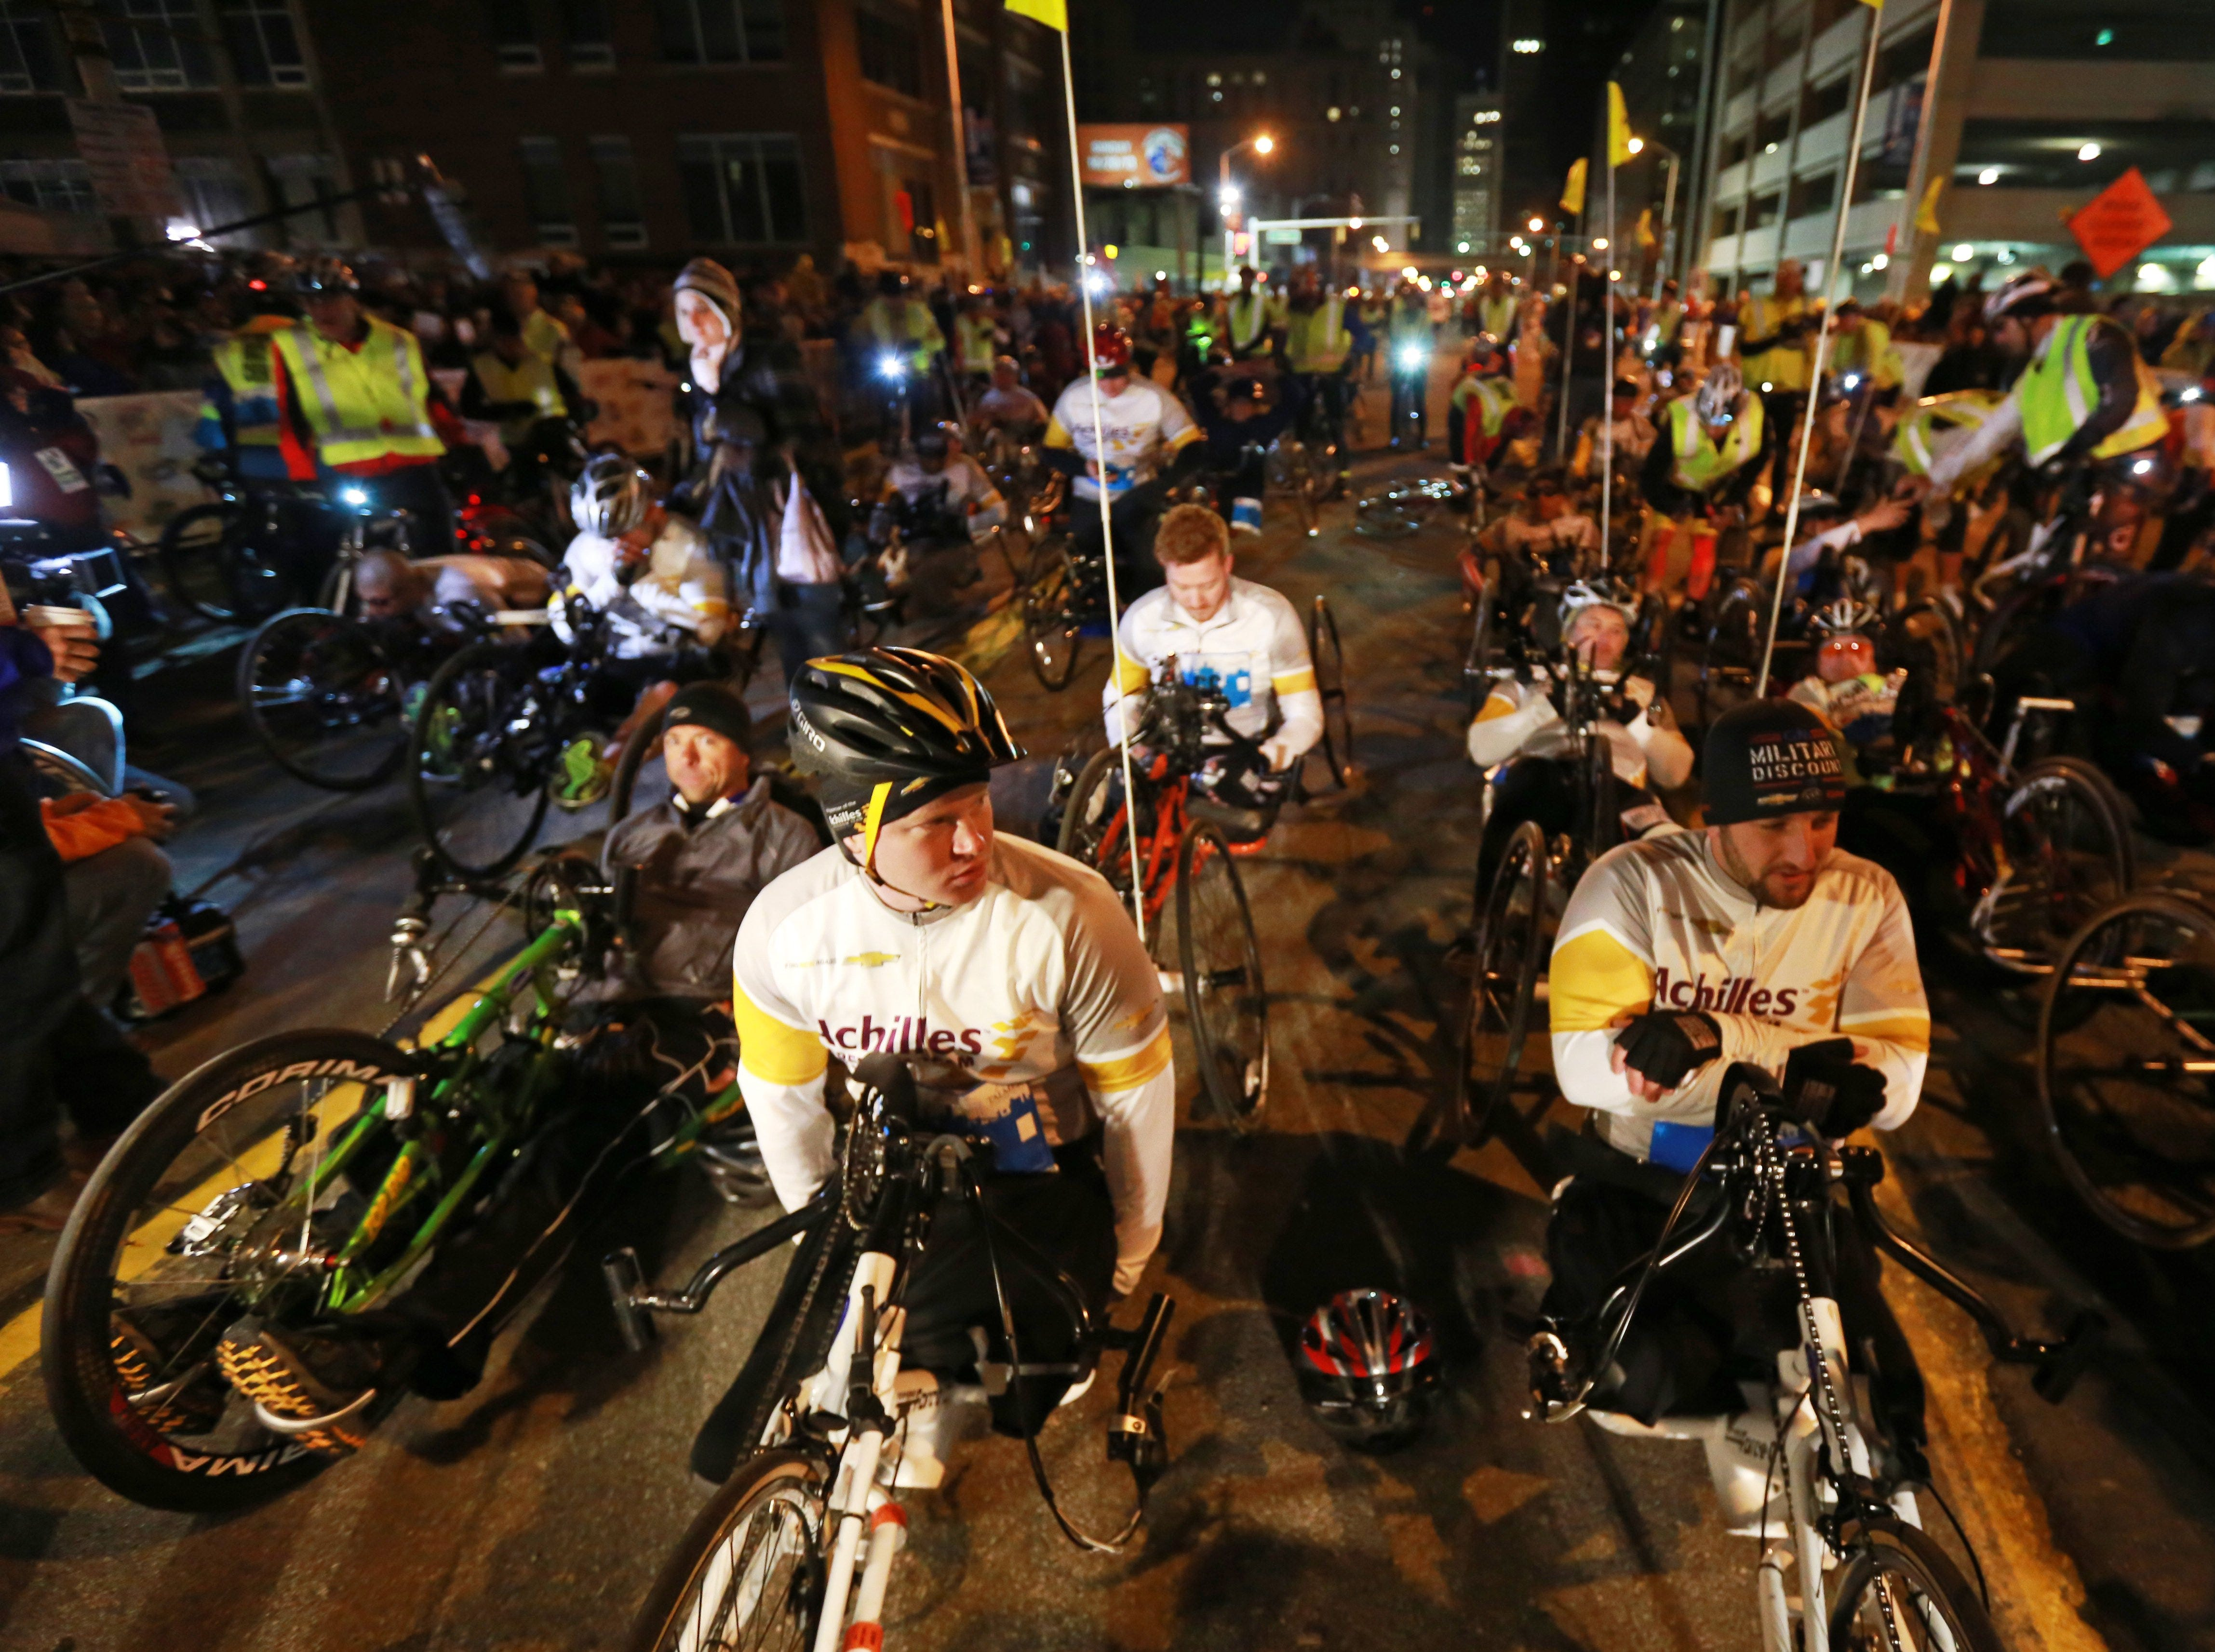 Wheelers wait for the start of their race during the 36th Annual Detroit Free Press/Talmer Bank Marathon in Detroit on Sunday, Oct. 20, 2013.